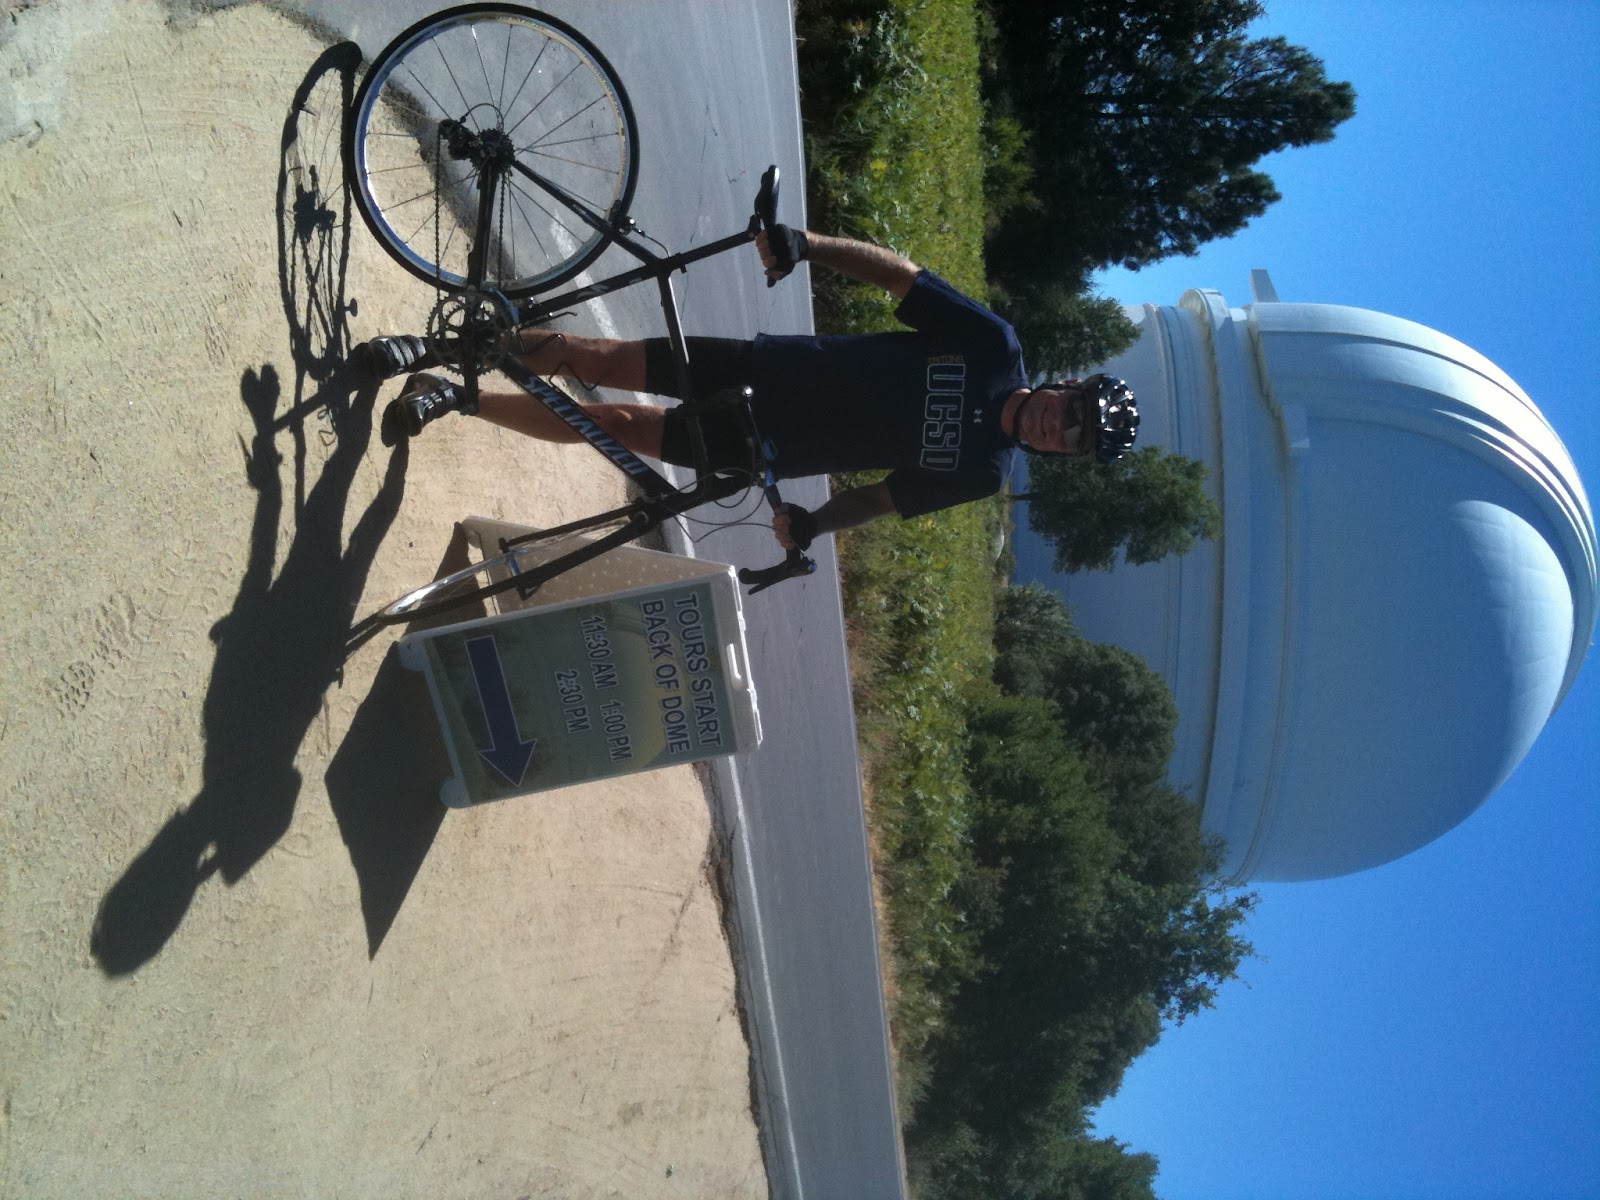 Cyclists at Palomar Observatory San Diego County